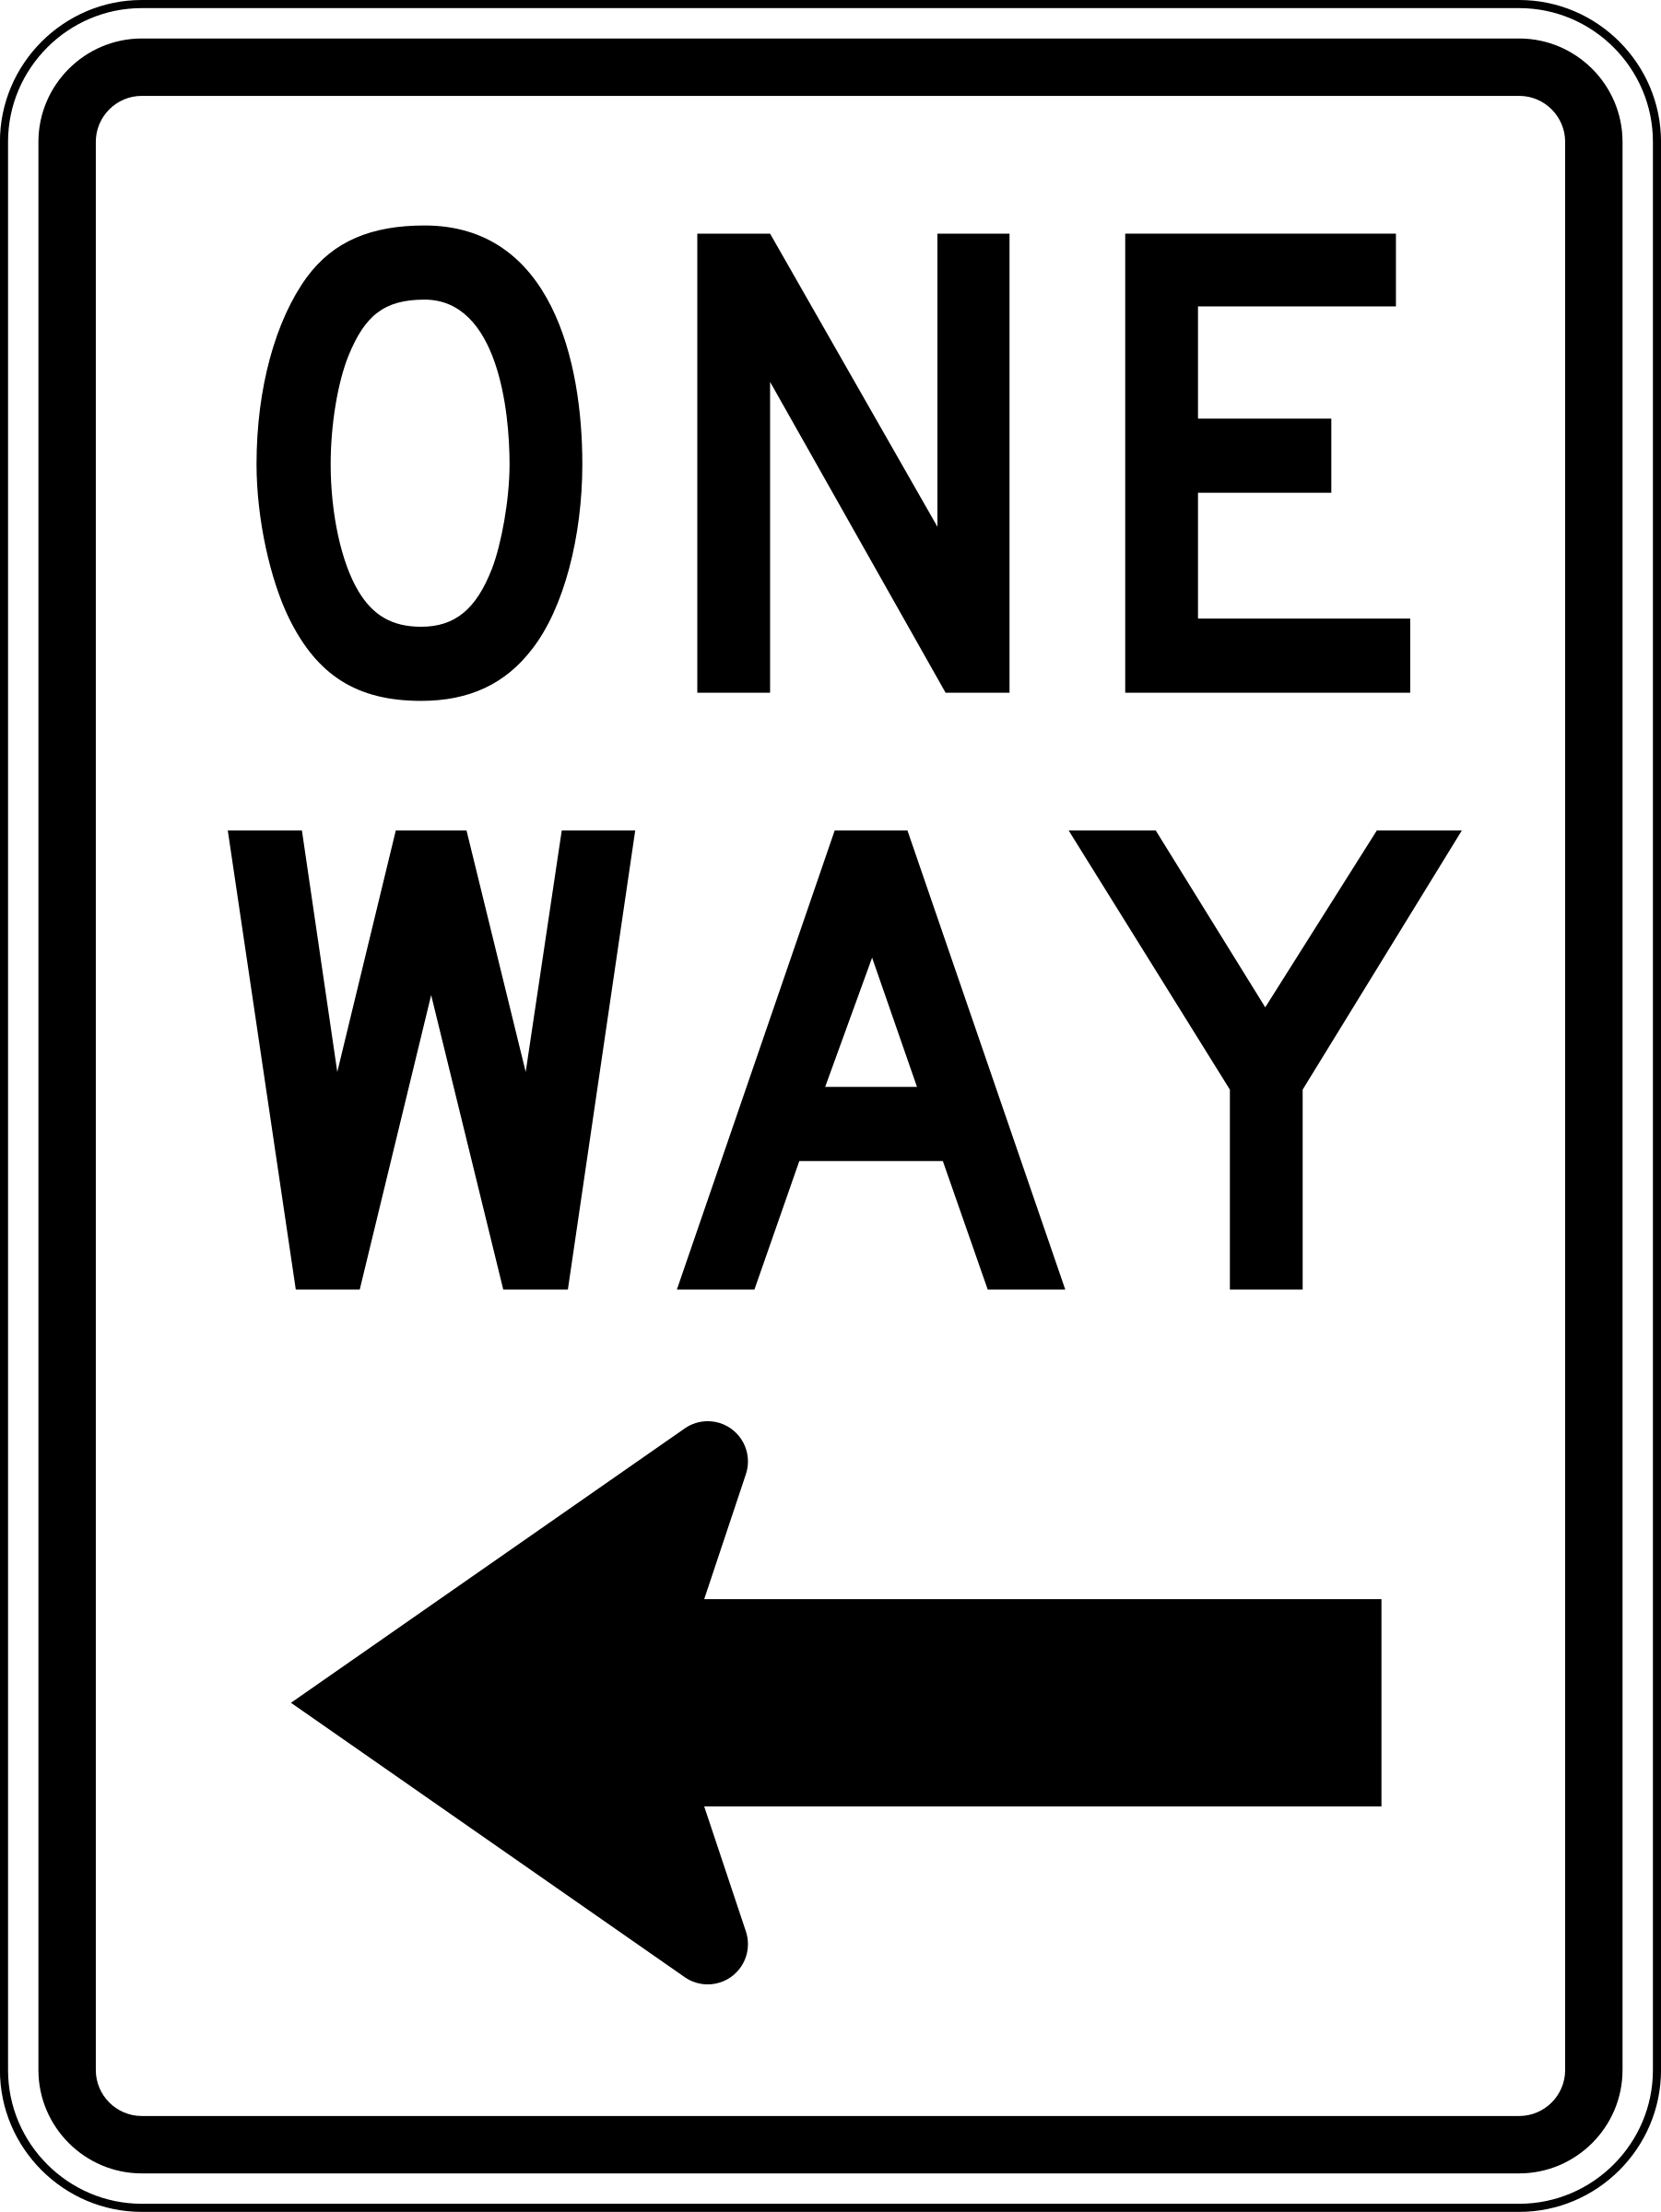 One Way Left traffic sign, vertical by Rfc1394